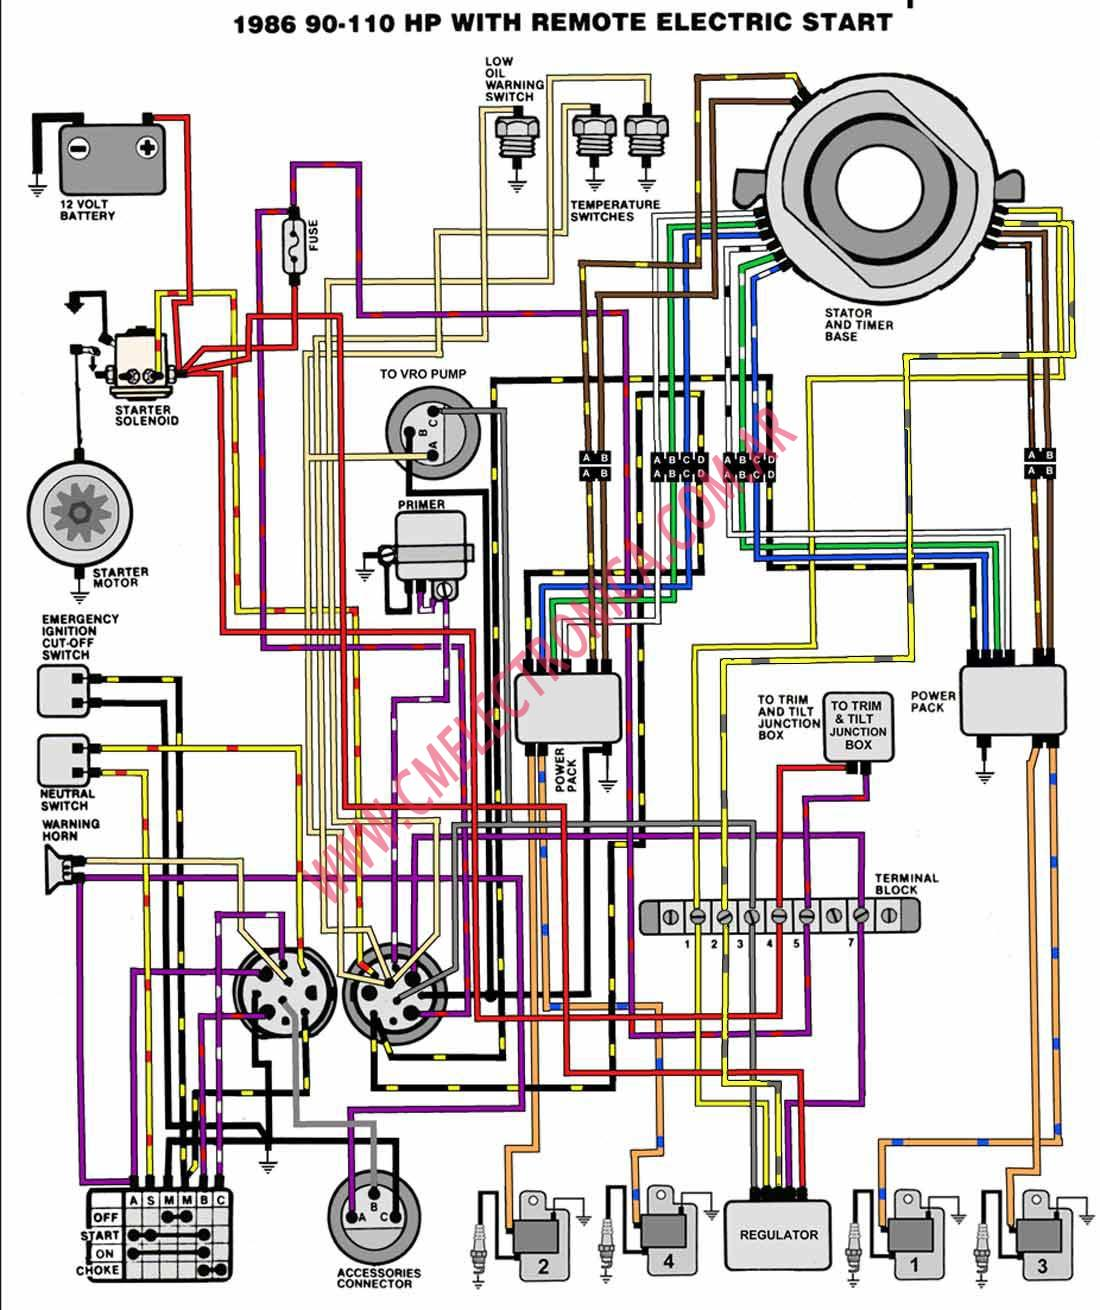 hight resolution of 1997 mercury outboard motor wiring diagram wiring diagram impjohnson 1997 outboard 115 hp wiring diagram wiring